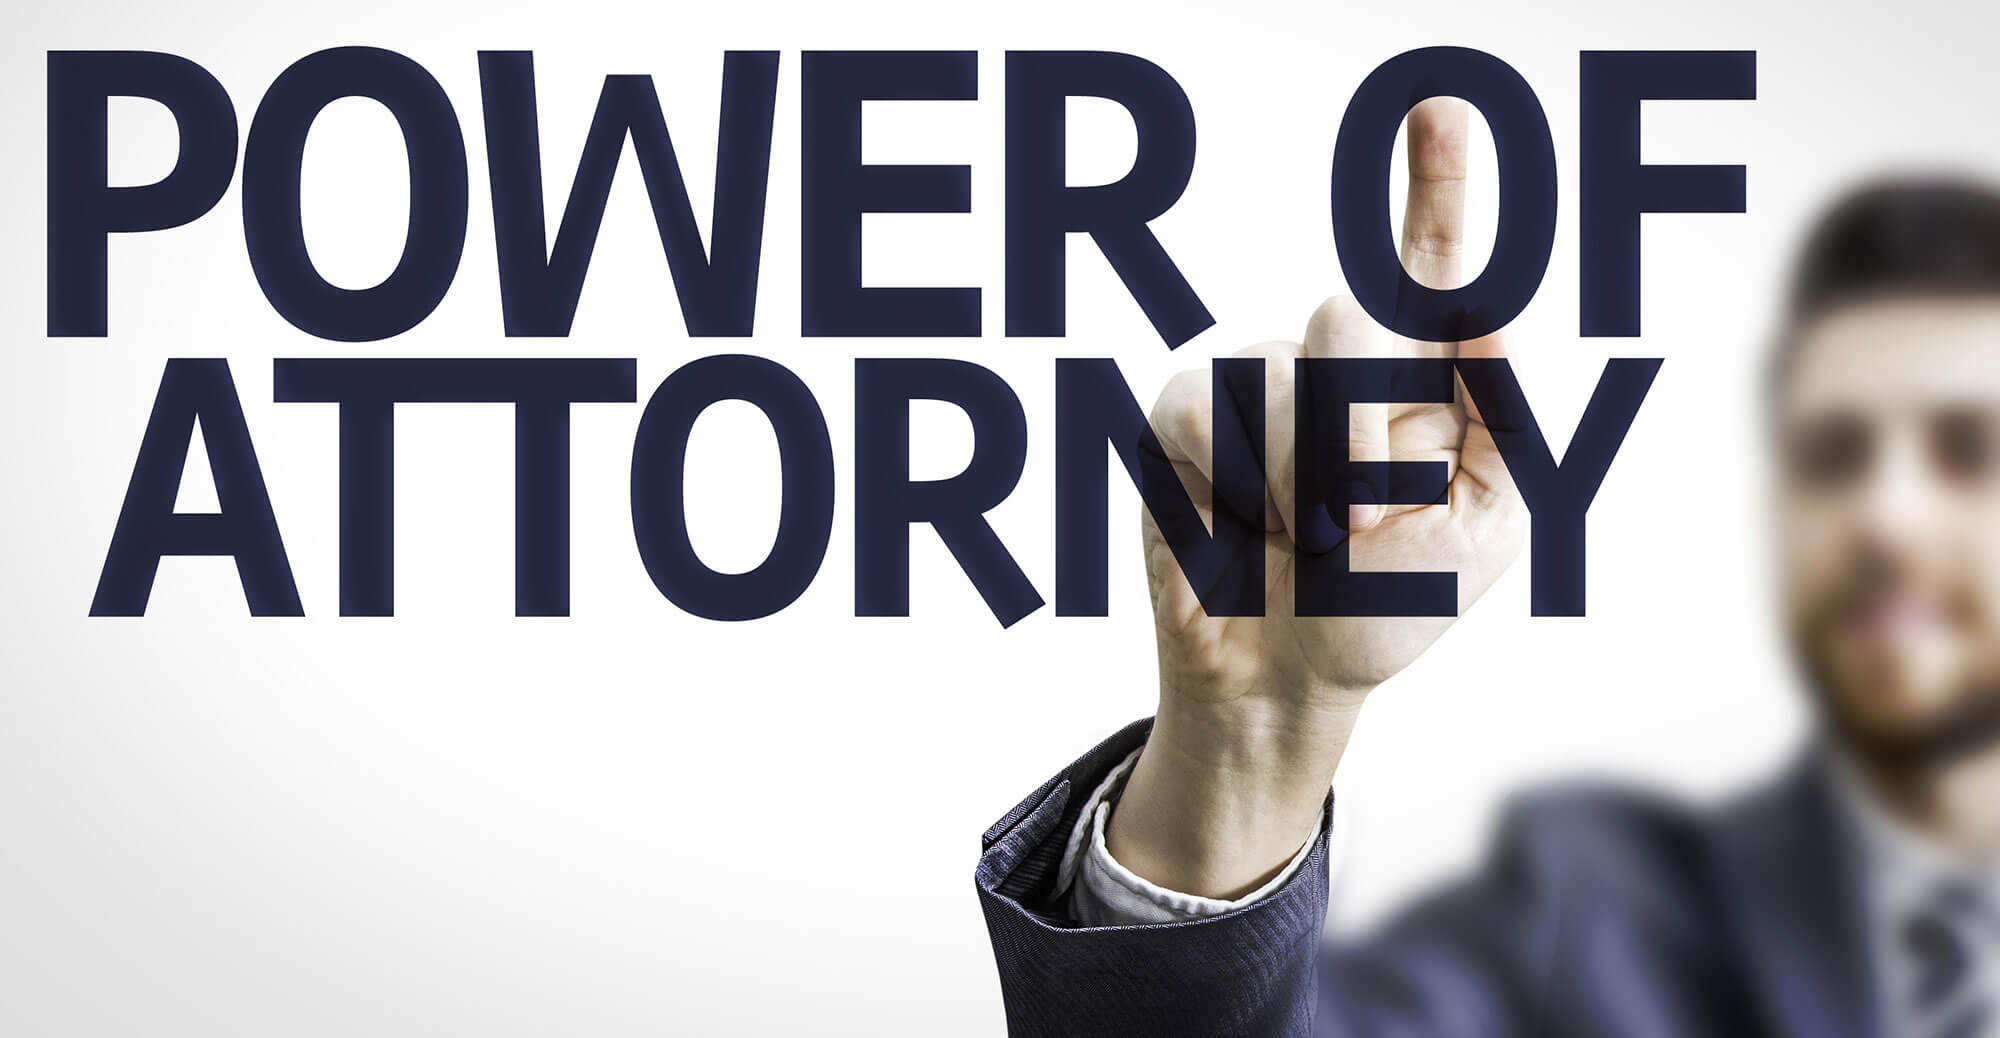 Why Do I Need an IRS Power of Attorney?